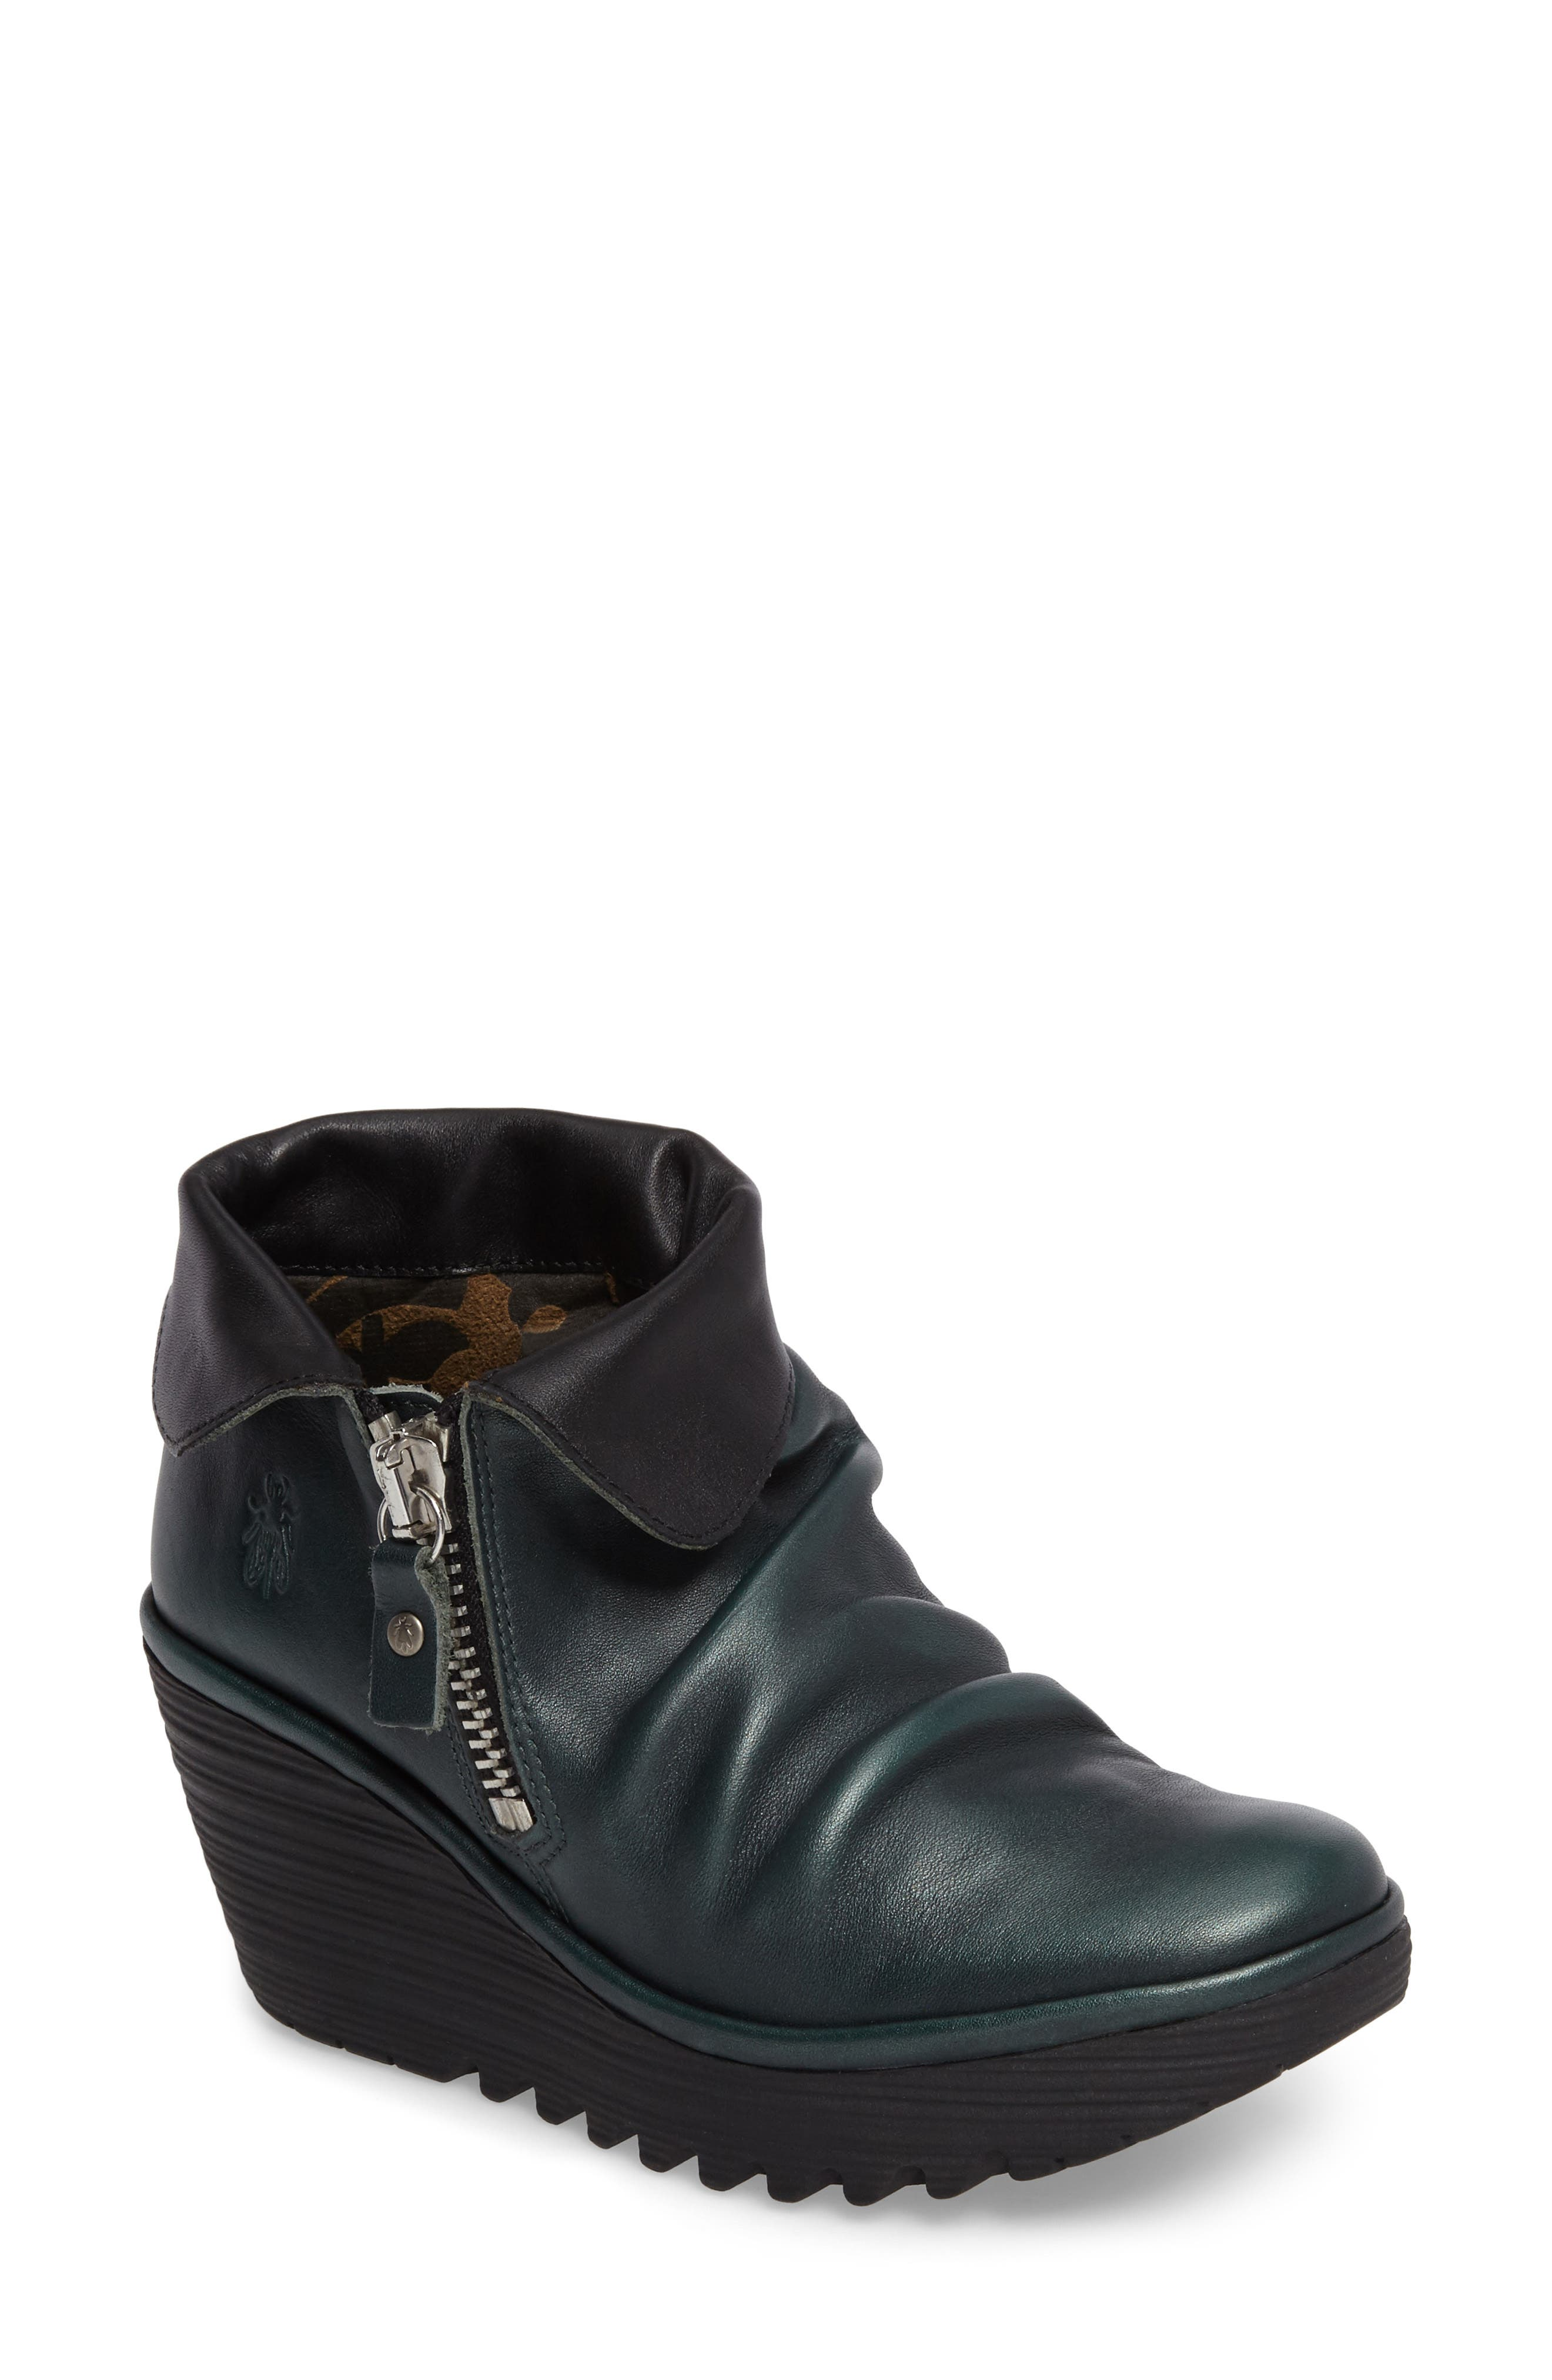 Yoxi Wedge Bootie,                             Main thumbnail 1, color,                             Seaweed Leather